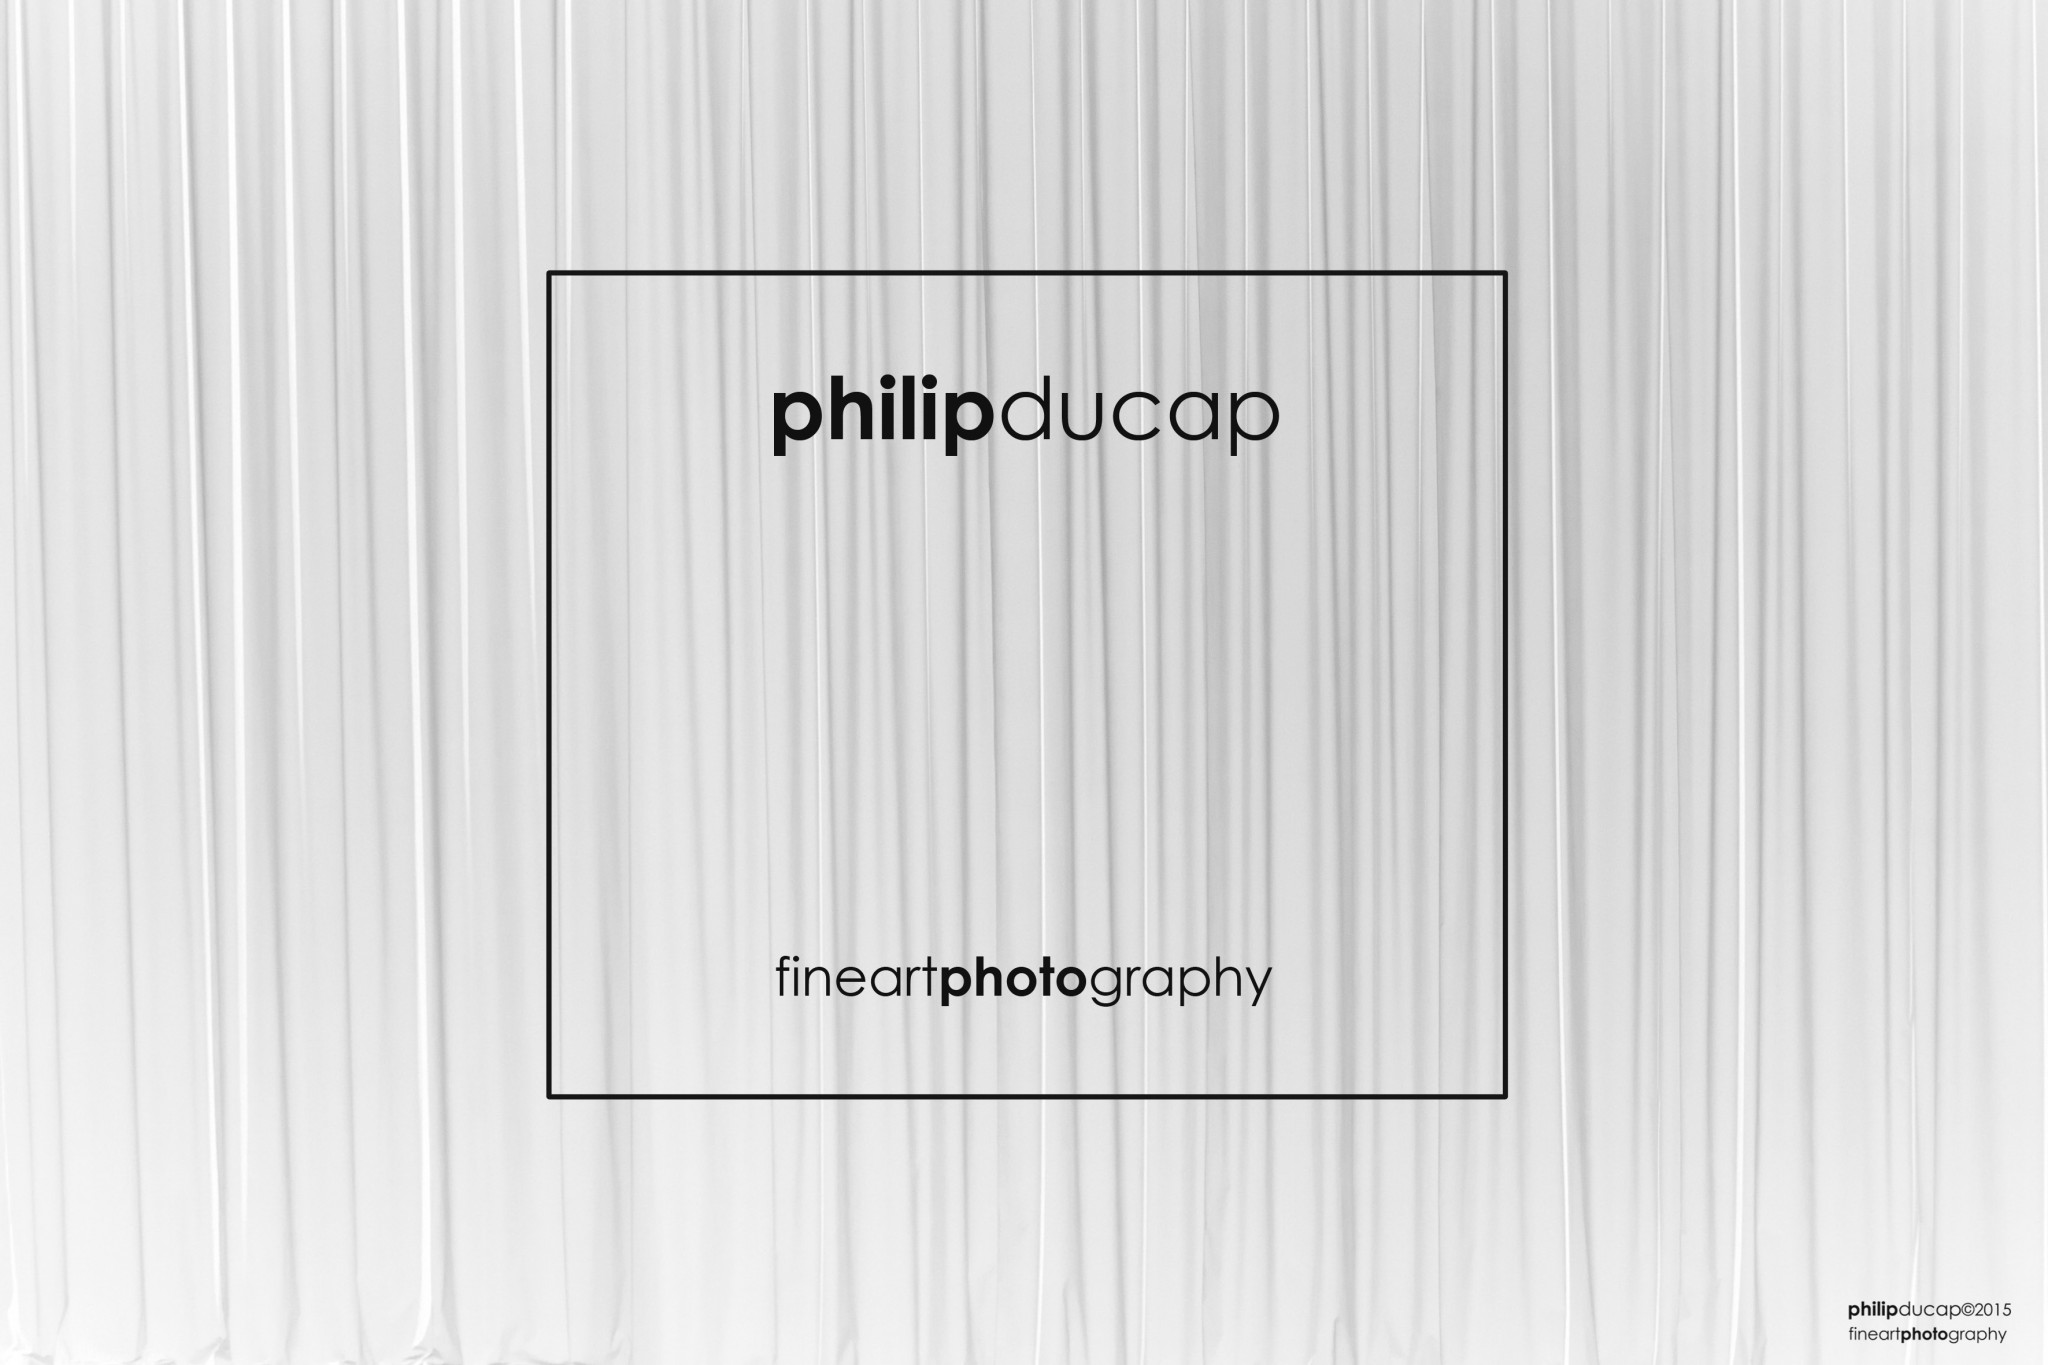 000 PhD_Logo_RIDEAU_WebSite_PolaHD_BW_RED